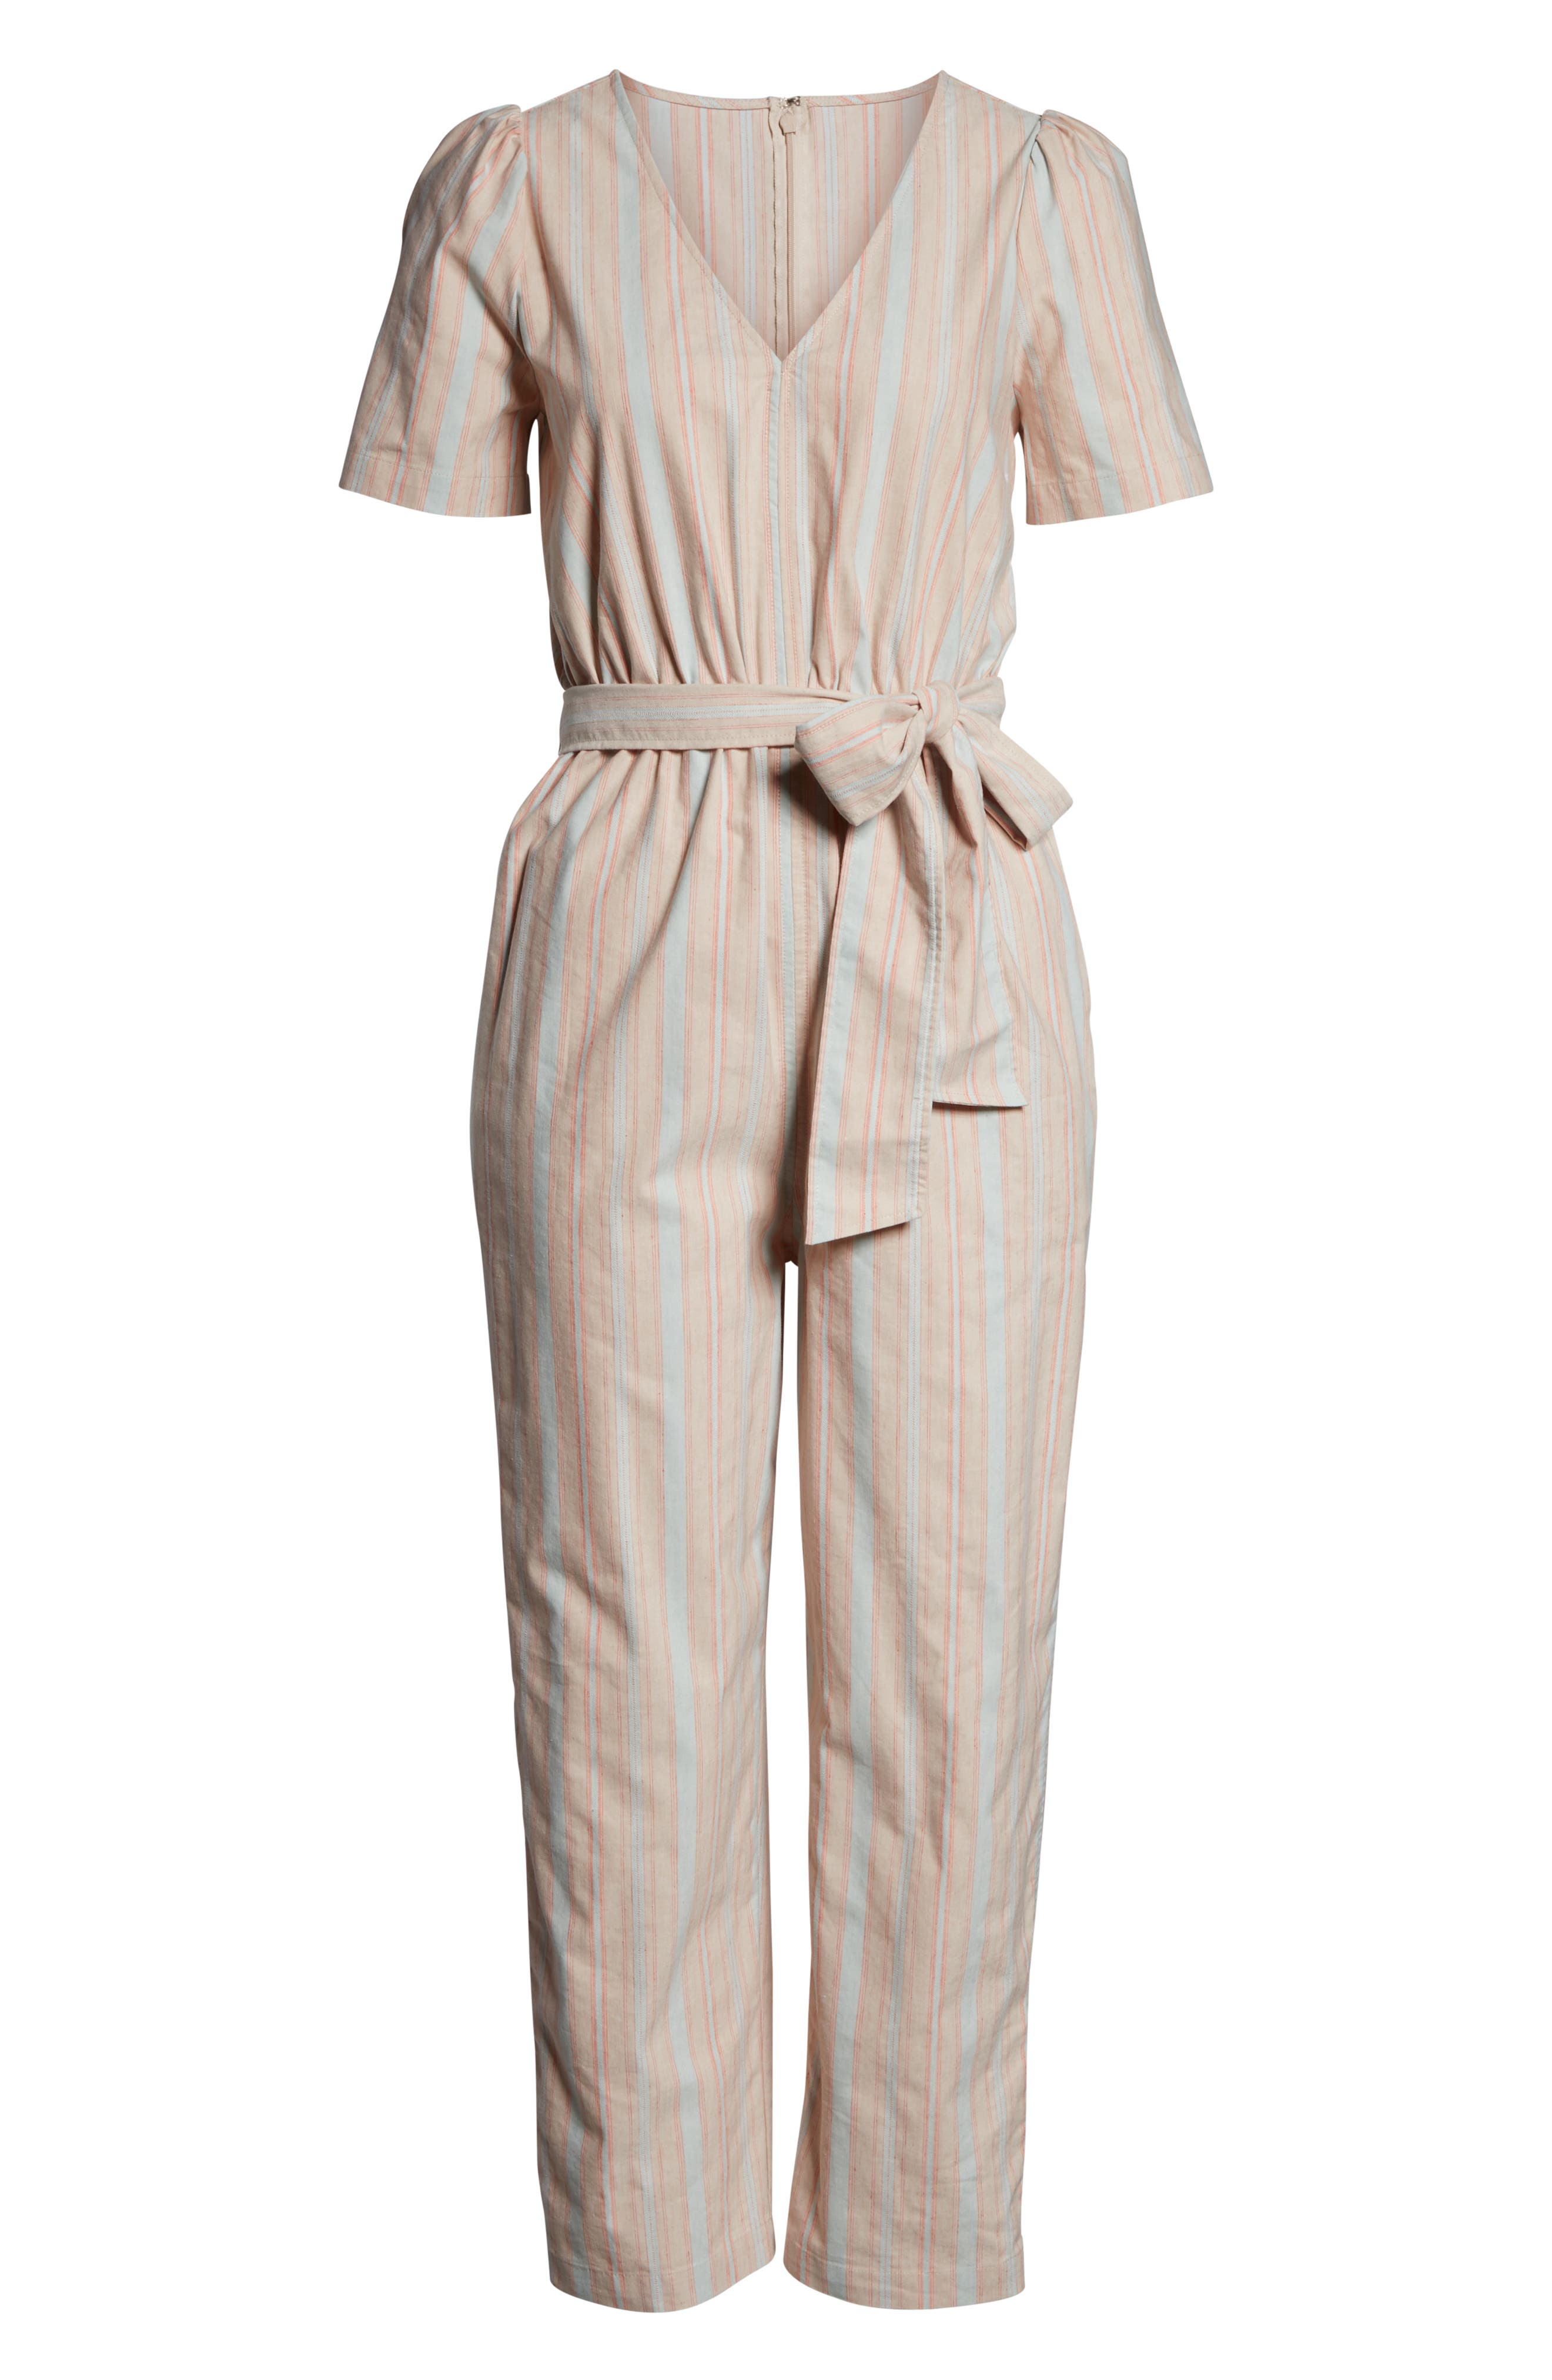 MADEWELL, Puff Sleeve Tapered Jumpsuit, Alternate thumbnail 6, color, 400